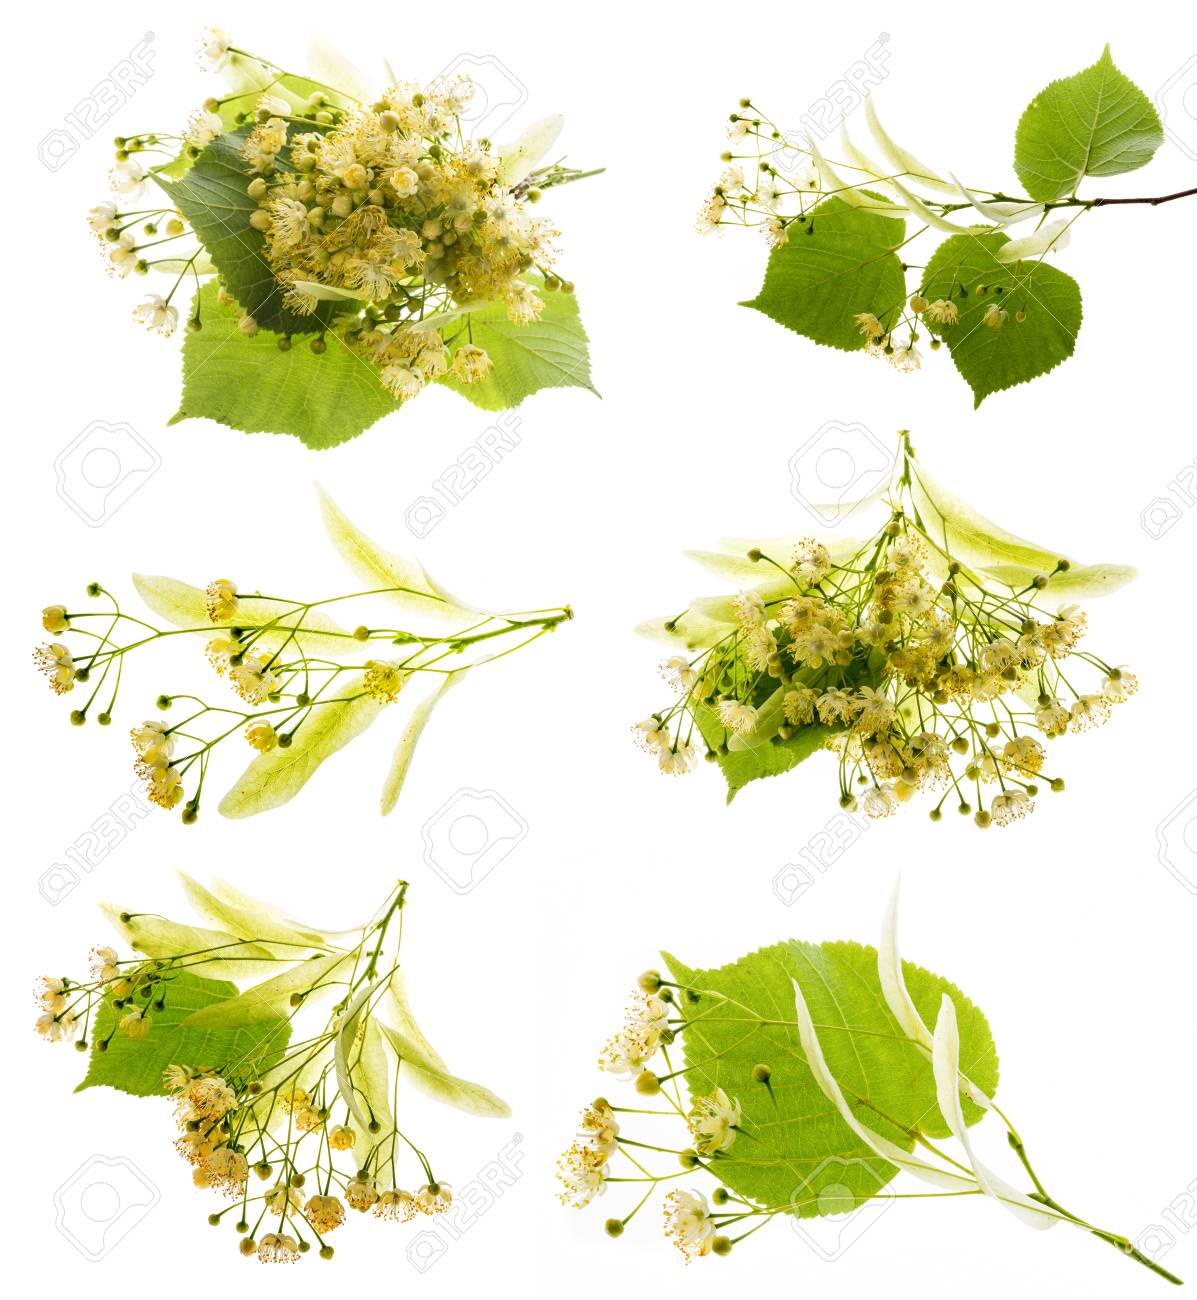 Linden flowers (Tilia cordata) collection isolated on a white background - 104891709